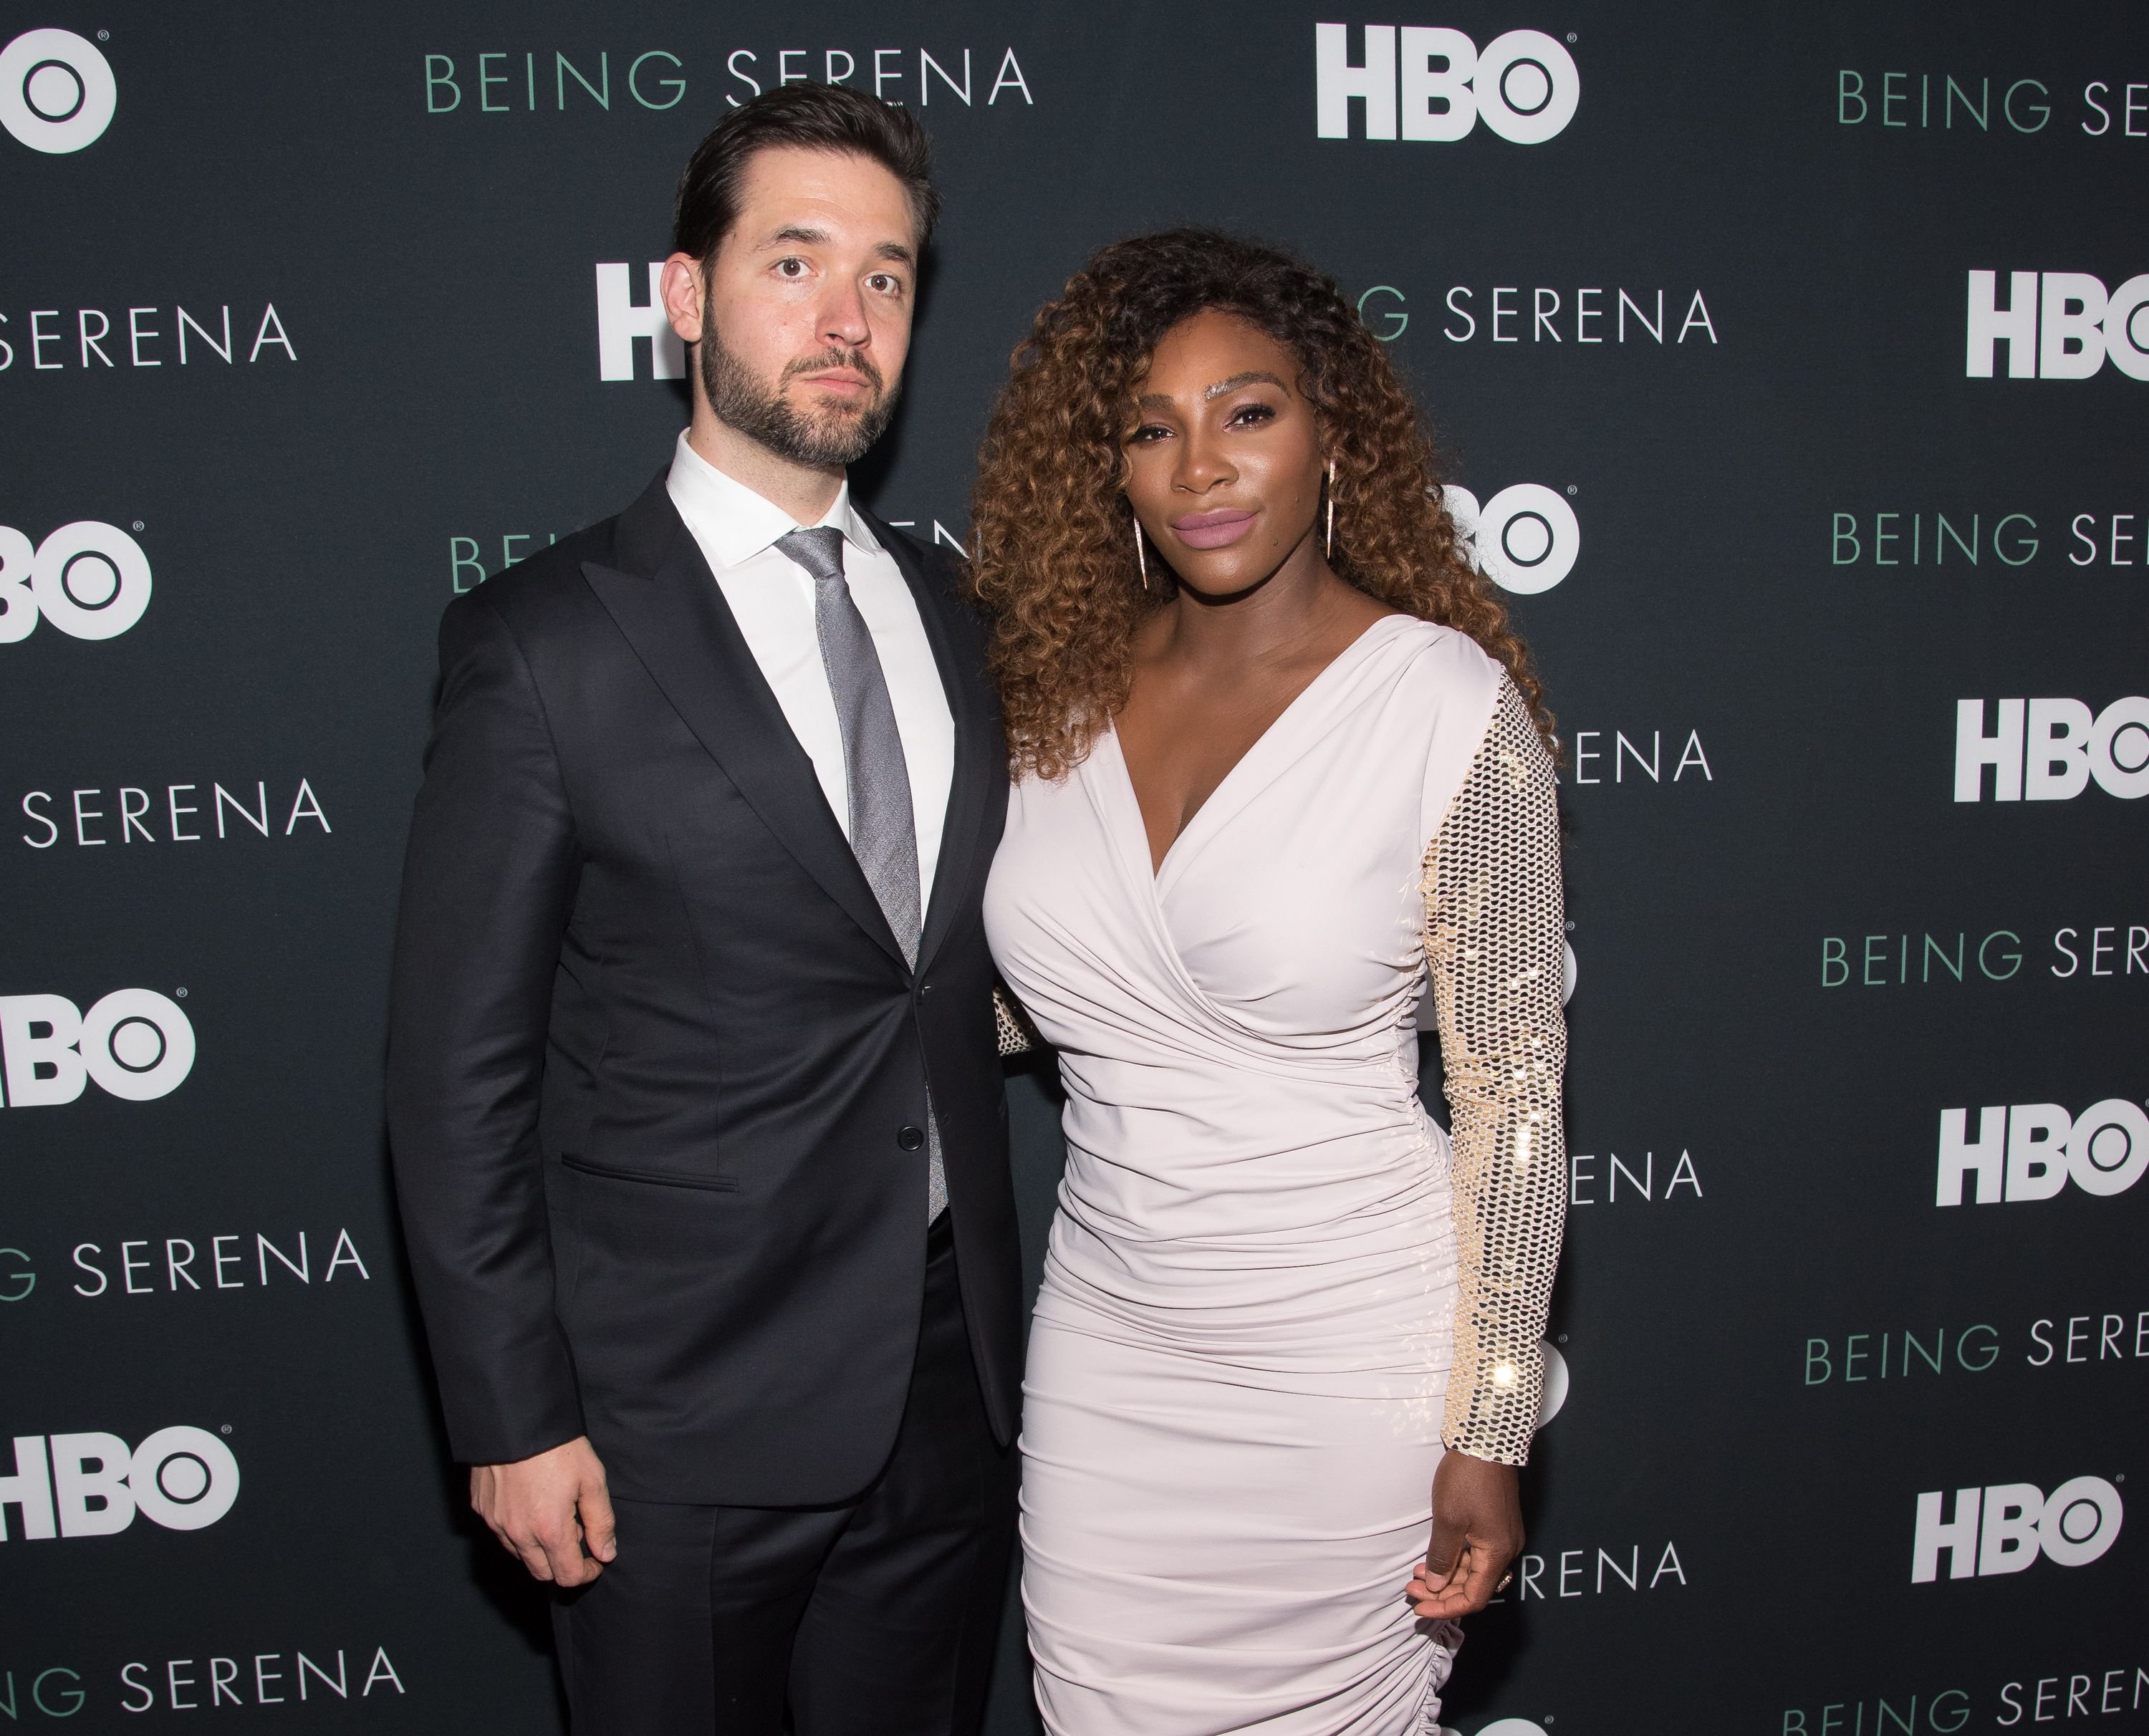 """Serena Williams and husband Alexis Ohanian at the """"Being Serena"""" New York premiere at Time Warner Center on April 25, 2018 